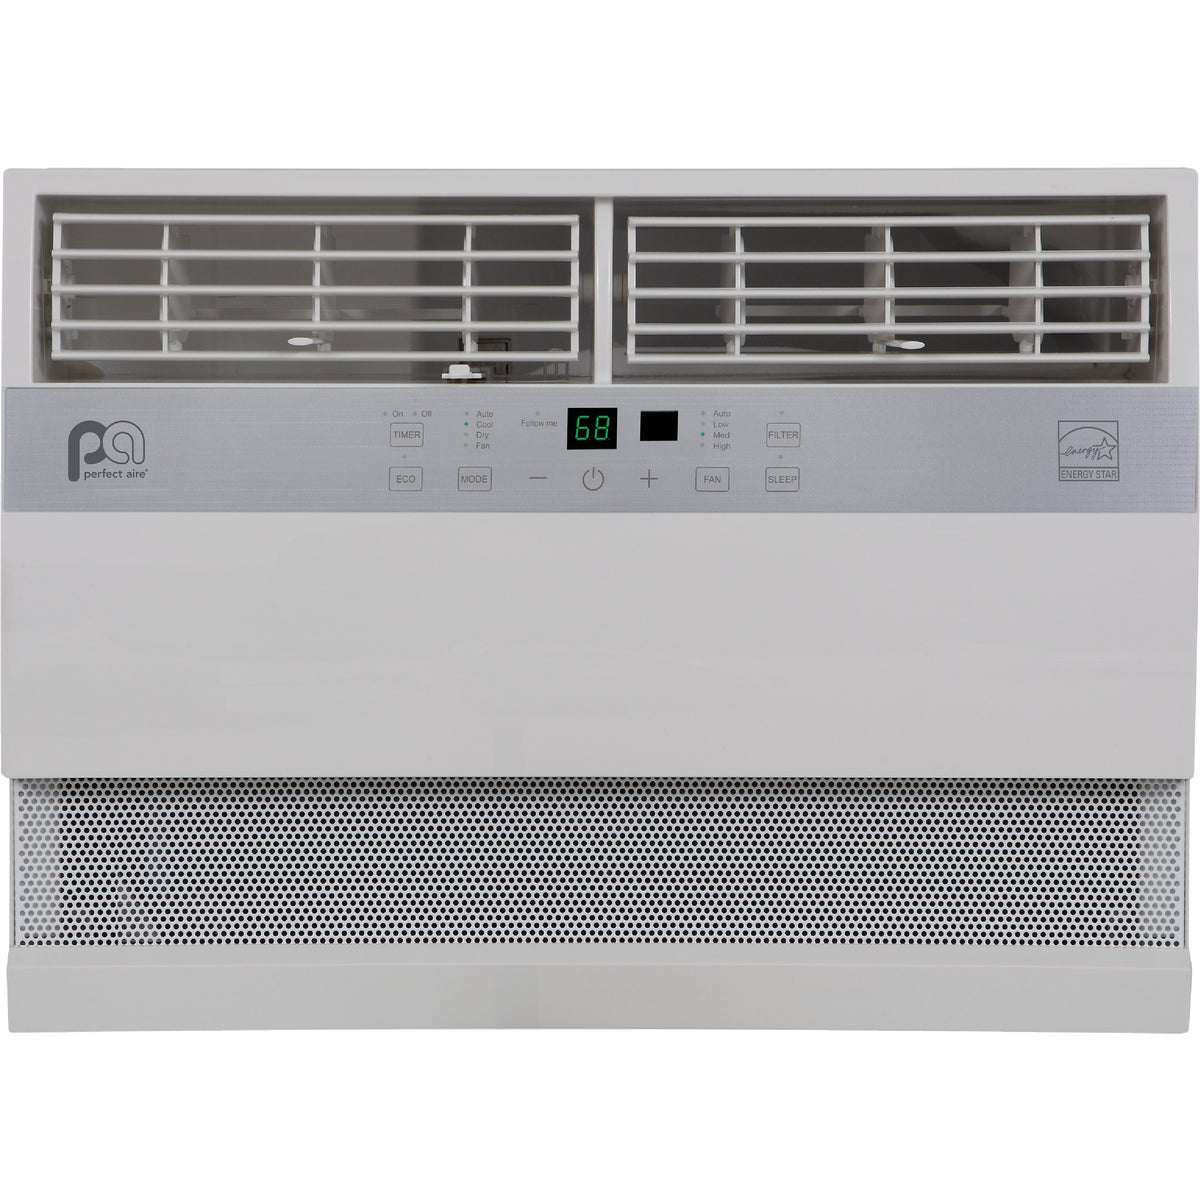 perfect aire 12 000 btu 115v room air conditioner ebay. Black Bedroom Furniture Sets. Home Design Ideas